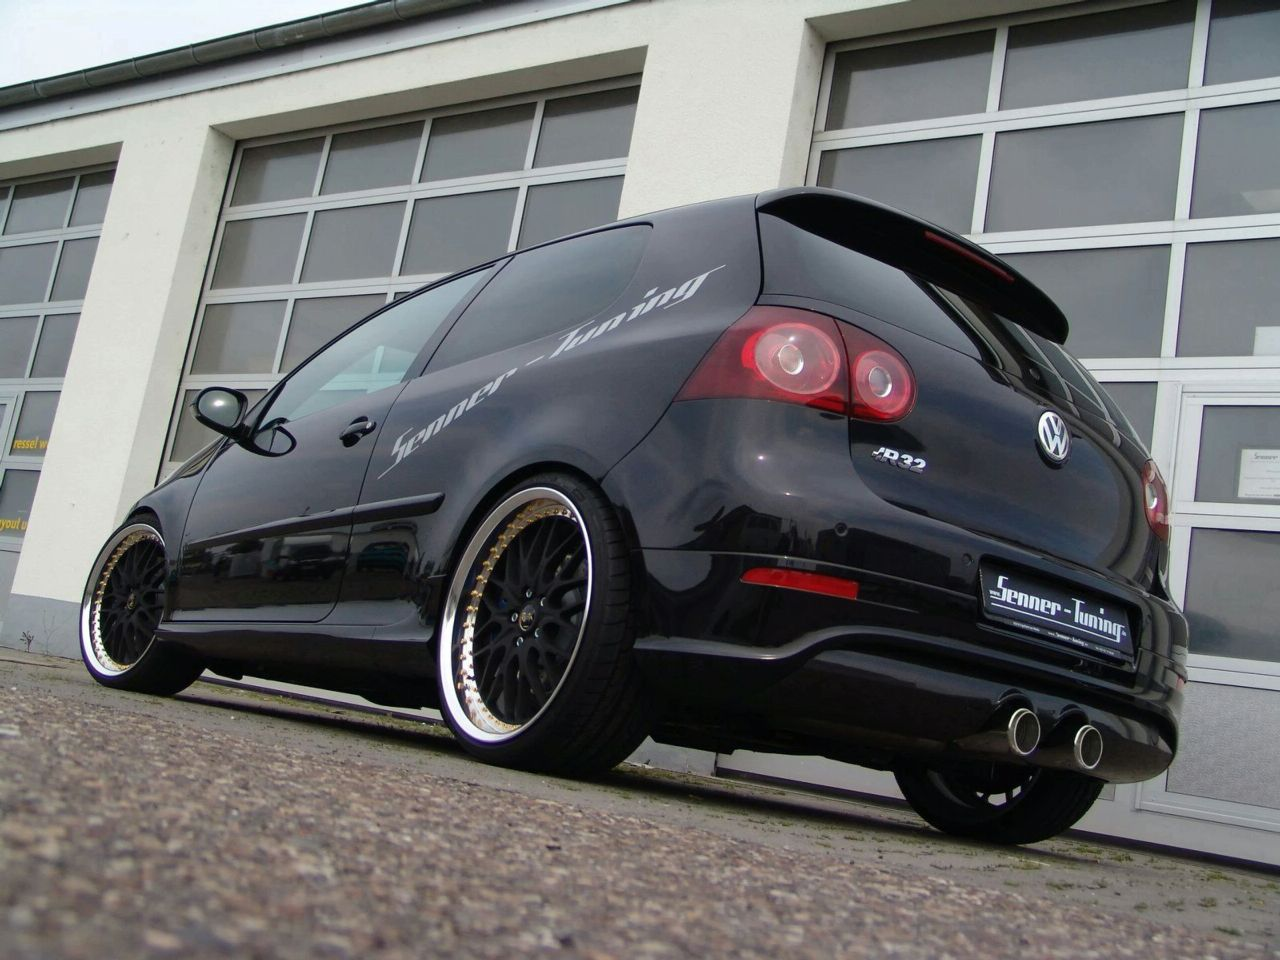 vw golf r32 tuning 11 vw tuning mag. Black Bedroom Furniture Sets. Home Design Ideas